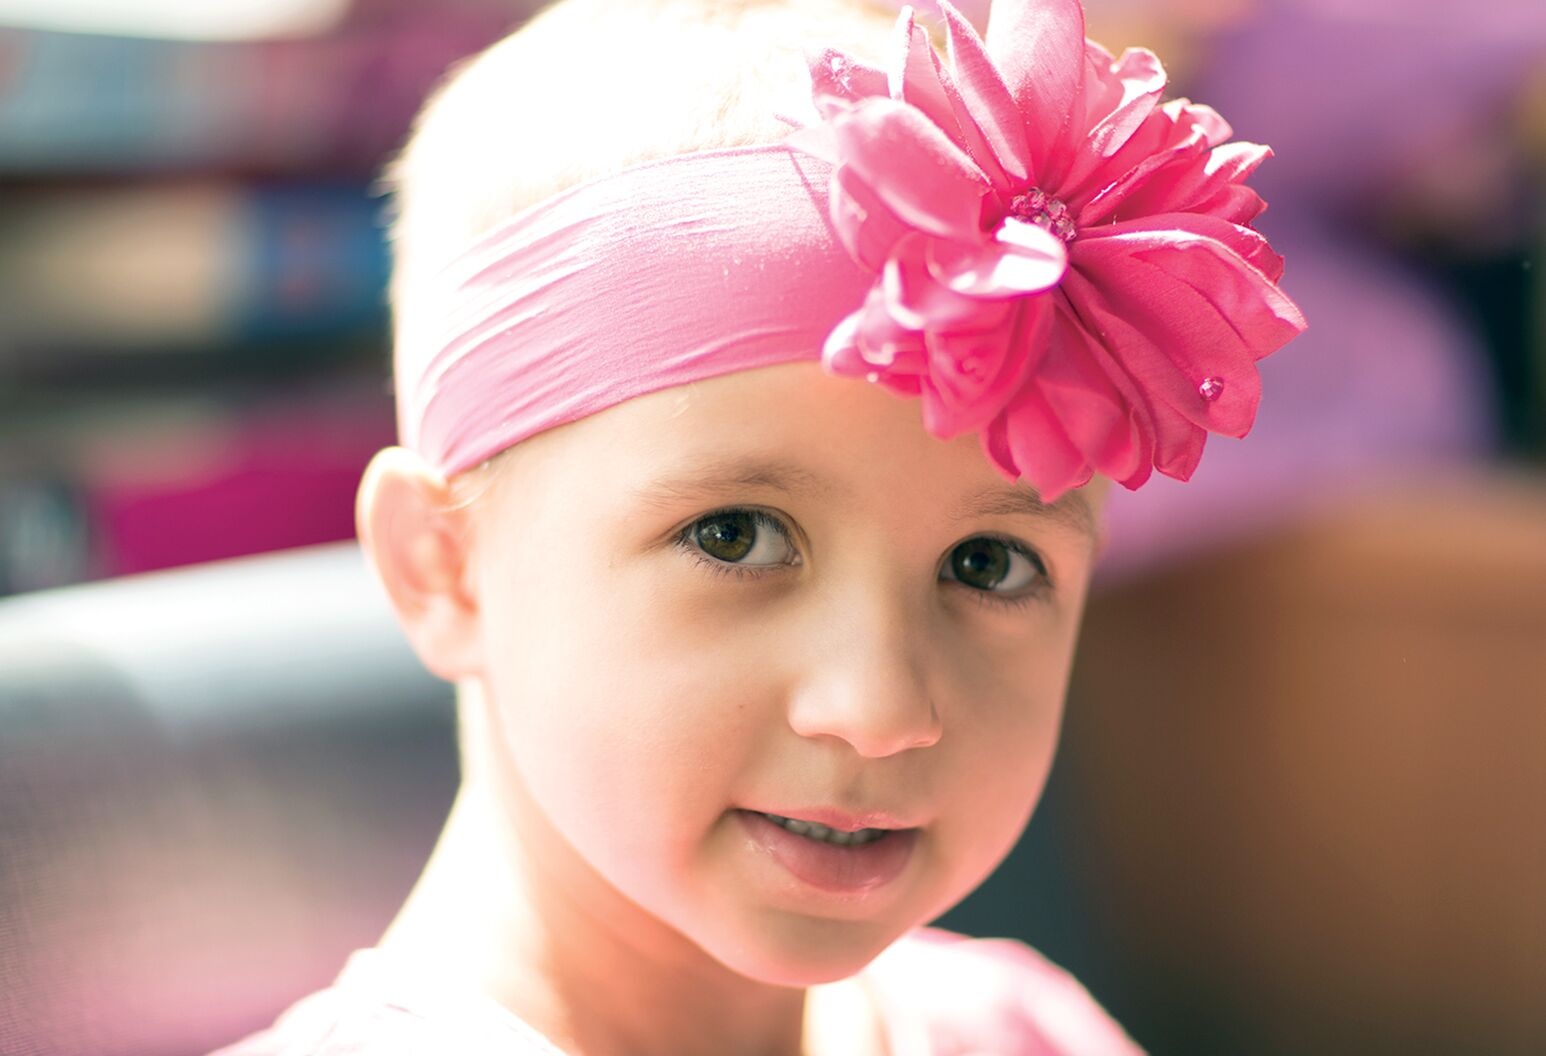 Young girl wearing a pink headband with a flower.